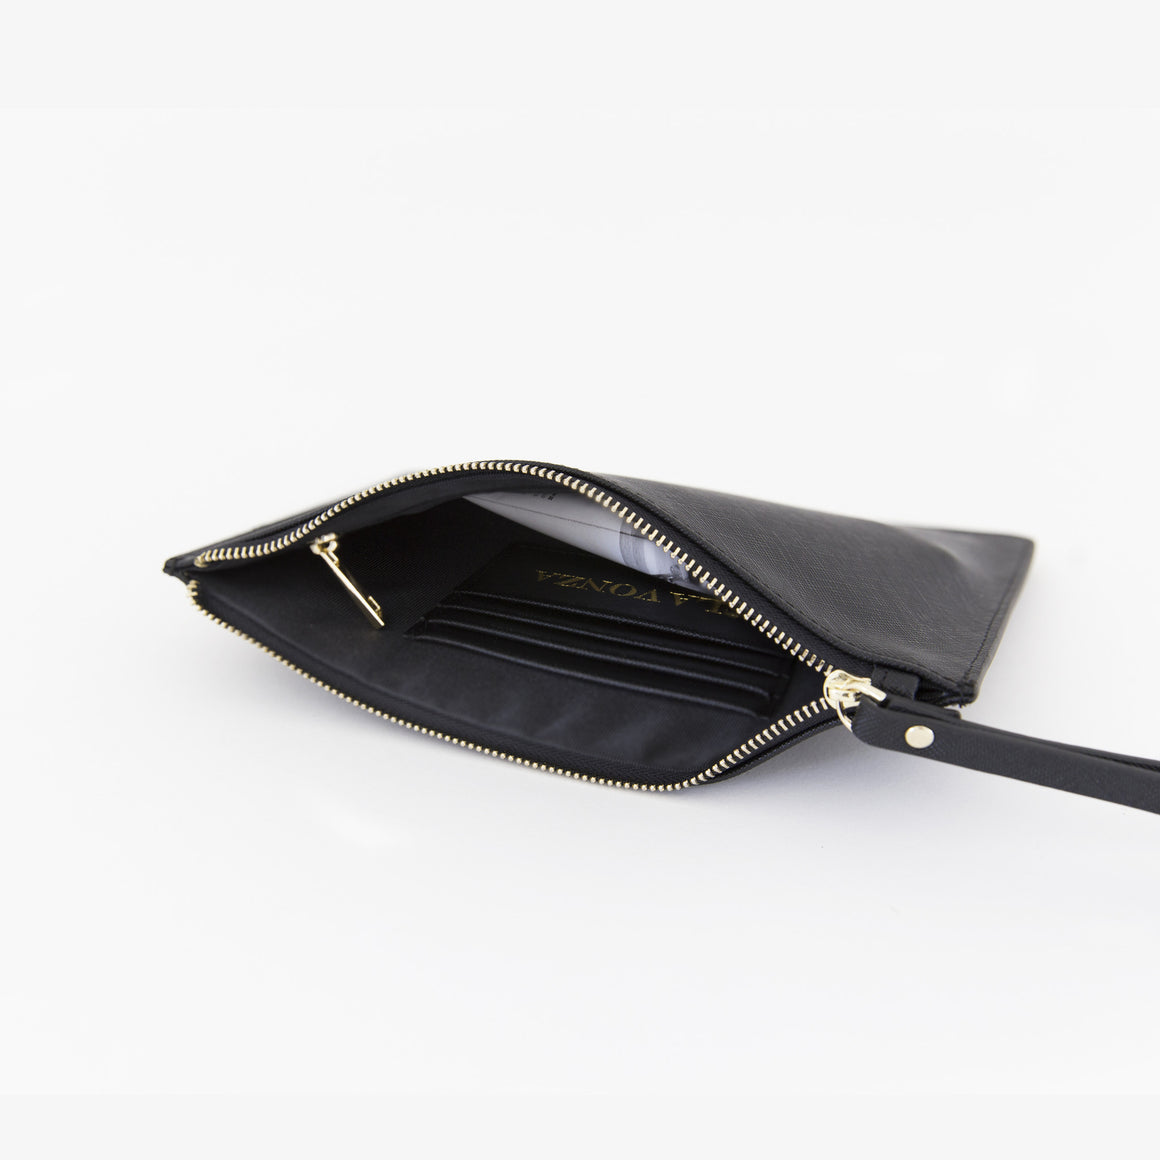 Black Saffiano Leather Pouch with wrist strap